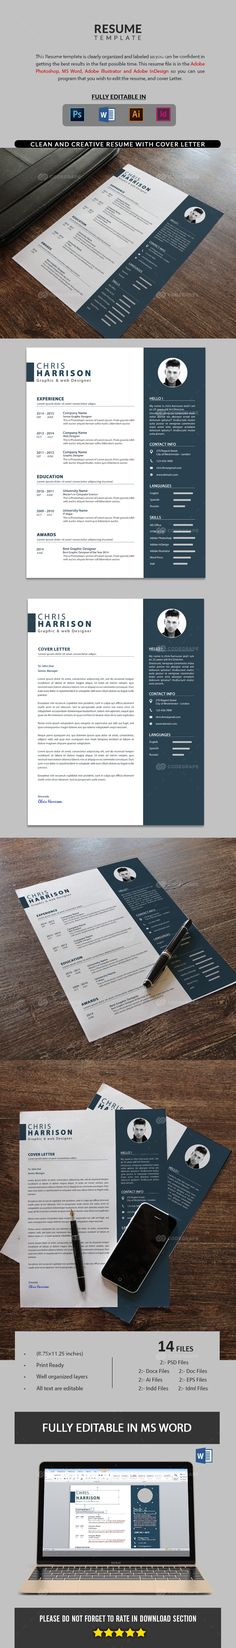 121 best Resumes PSD images on Pinterest Resume templates - resume design